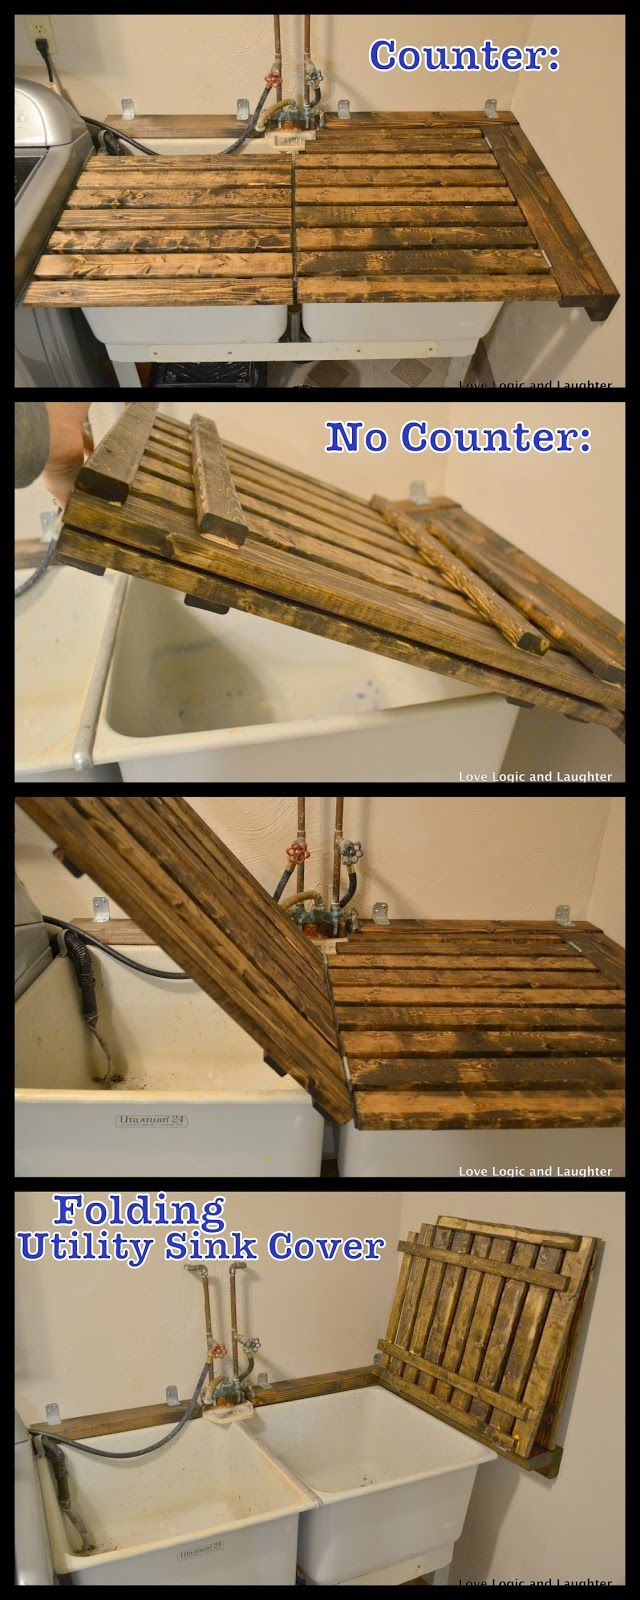 DIY counter over utility sink - fold away to use sink or fold down for countertop space.